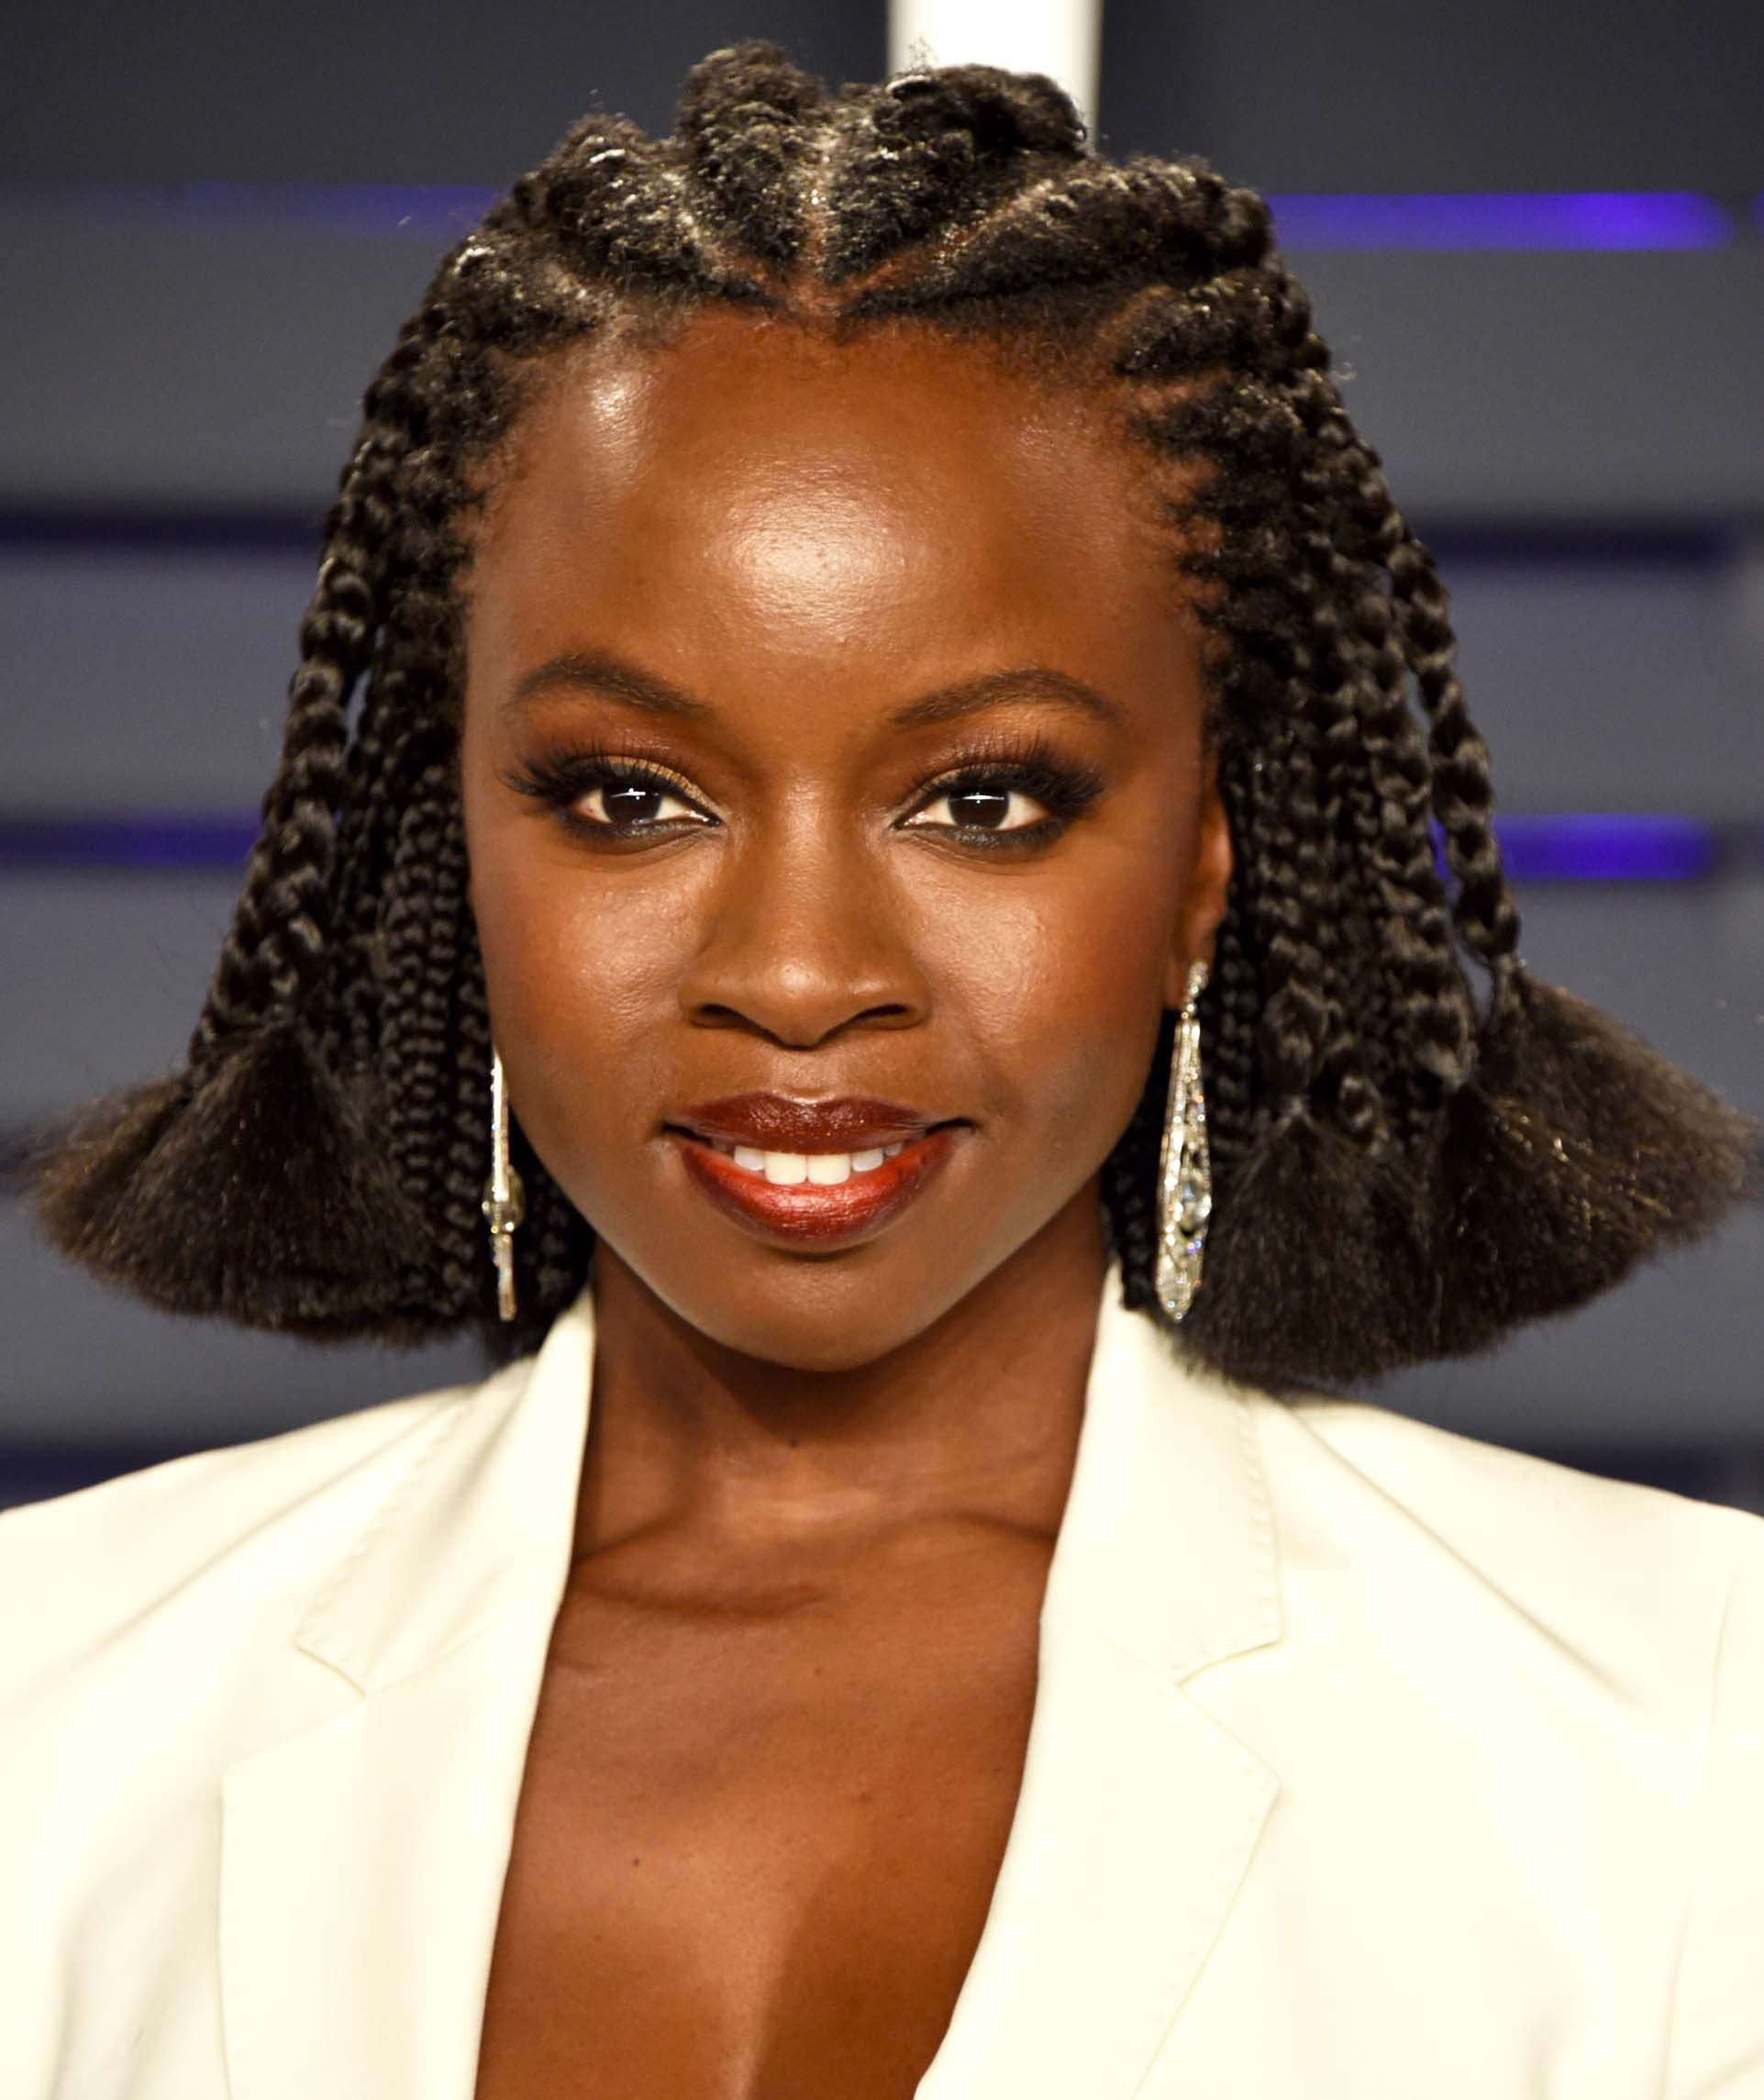 20 Stunning Braided Hairstyles For Natural Hair